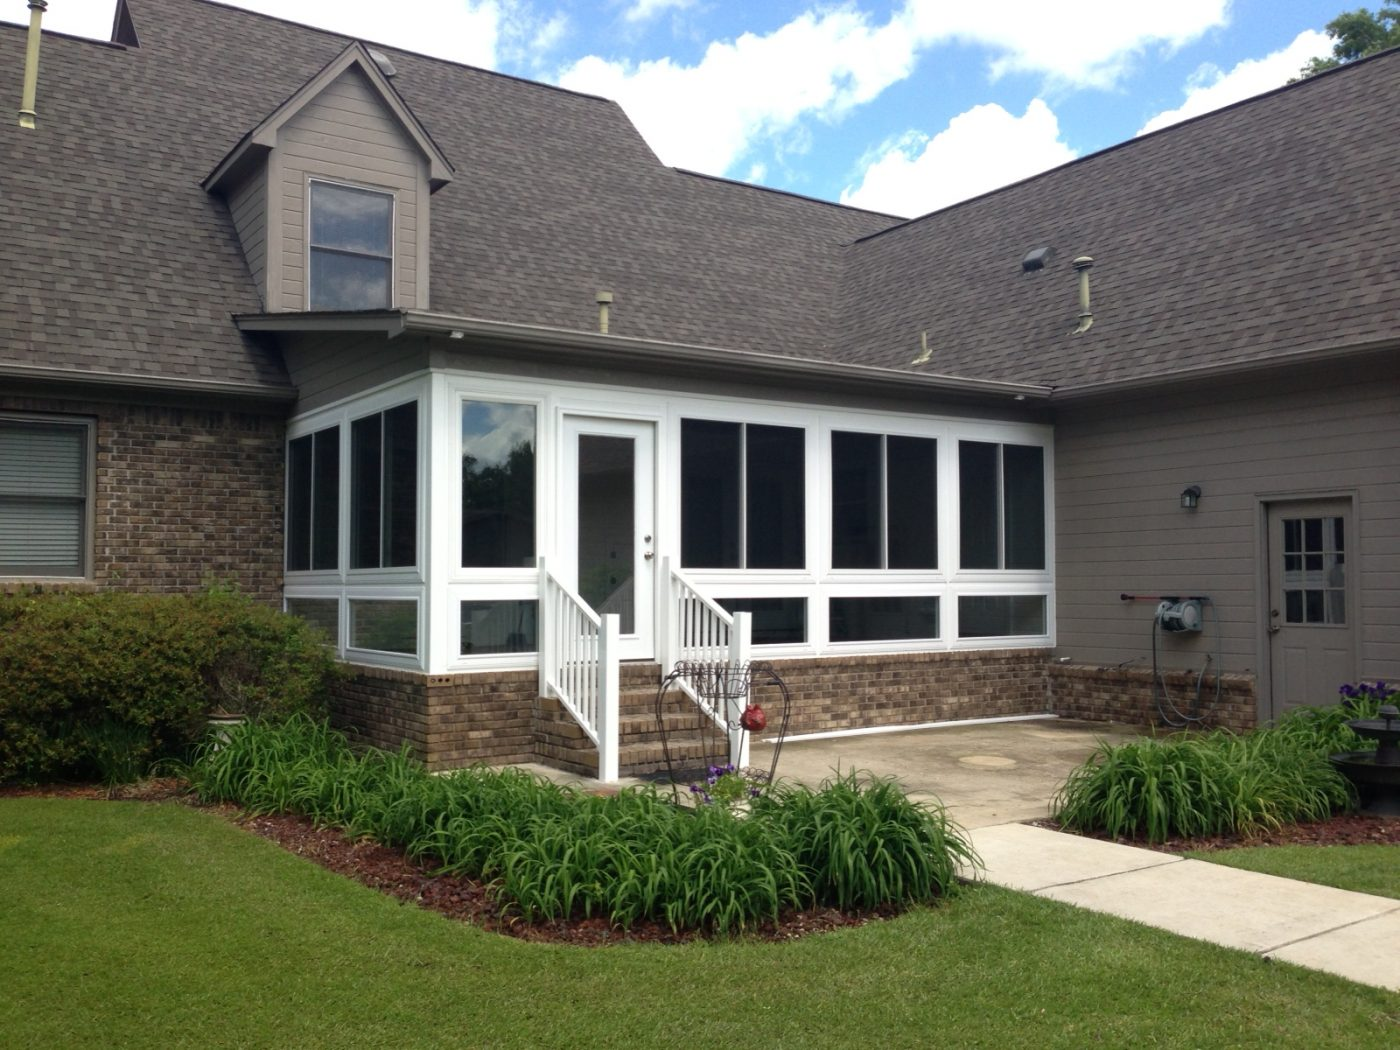 Four seasons sunrooms choice windows doors for Home additions